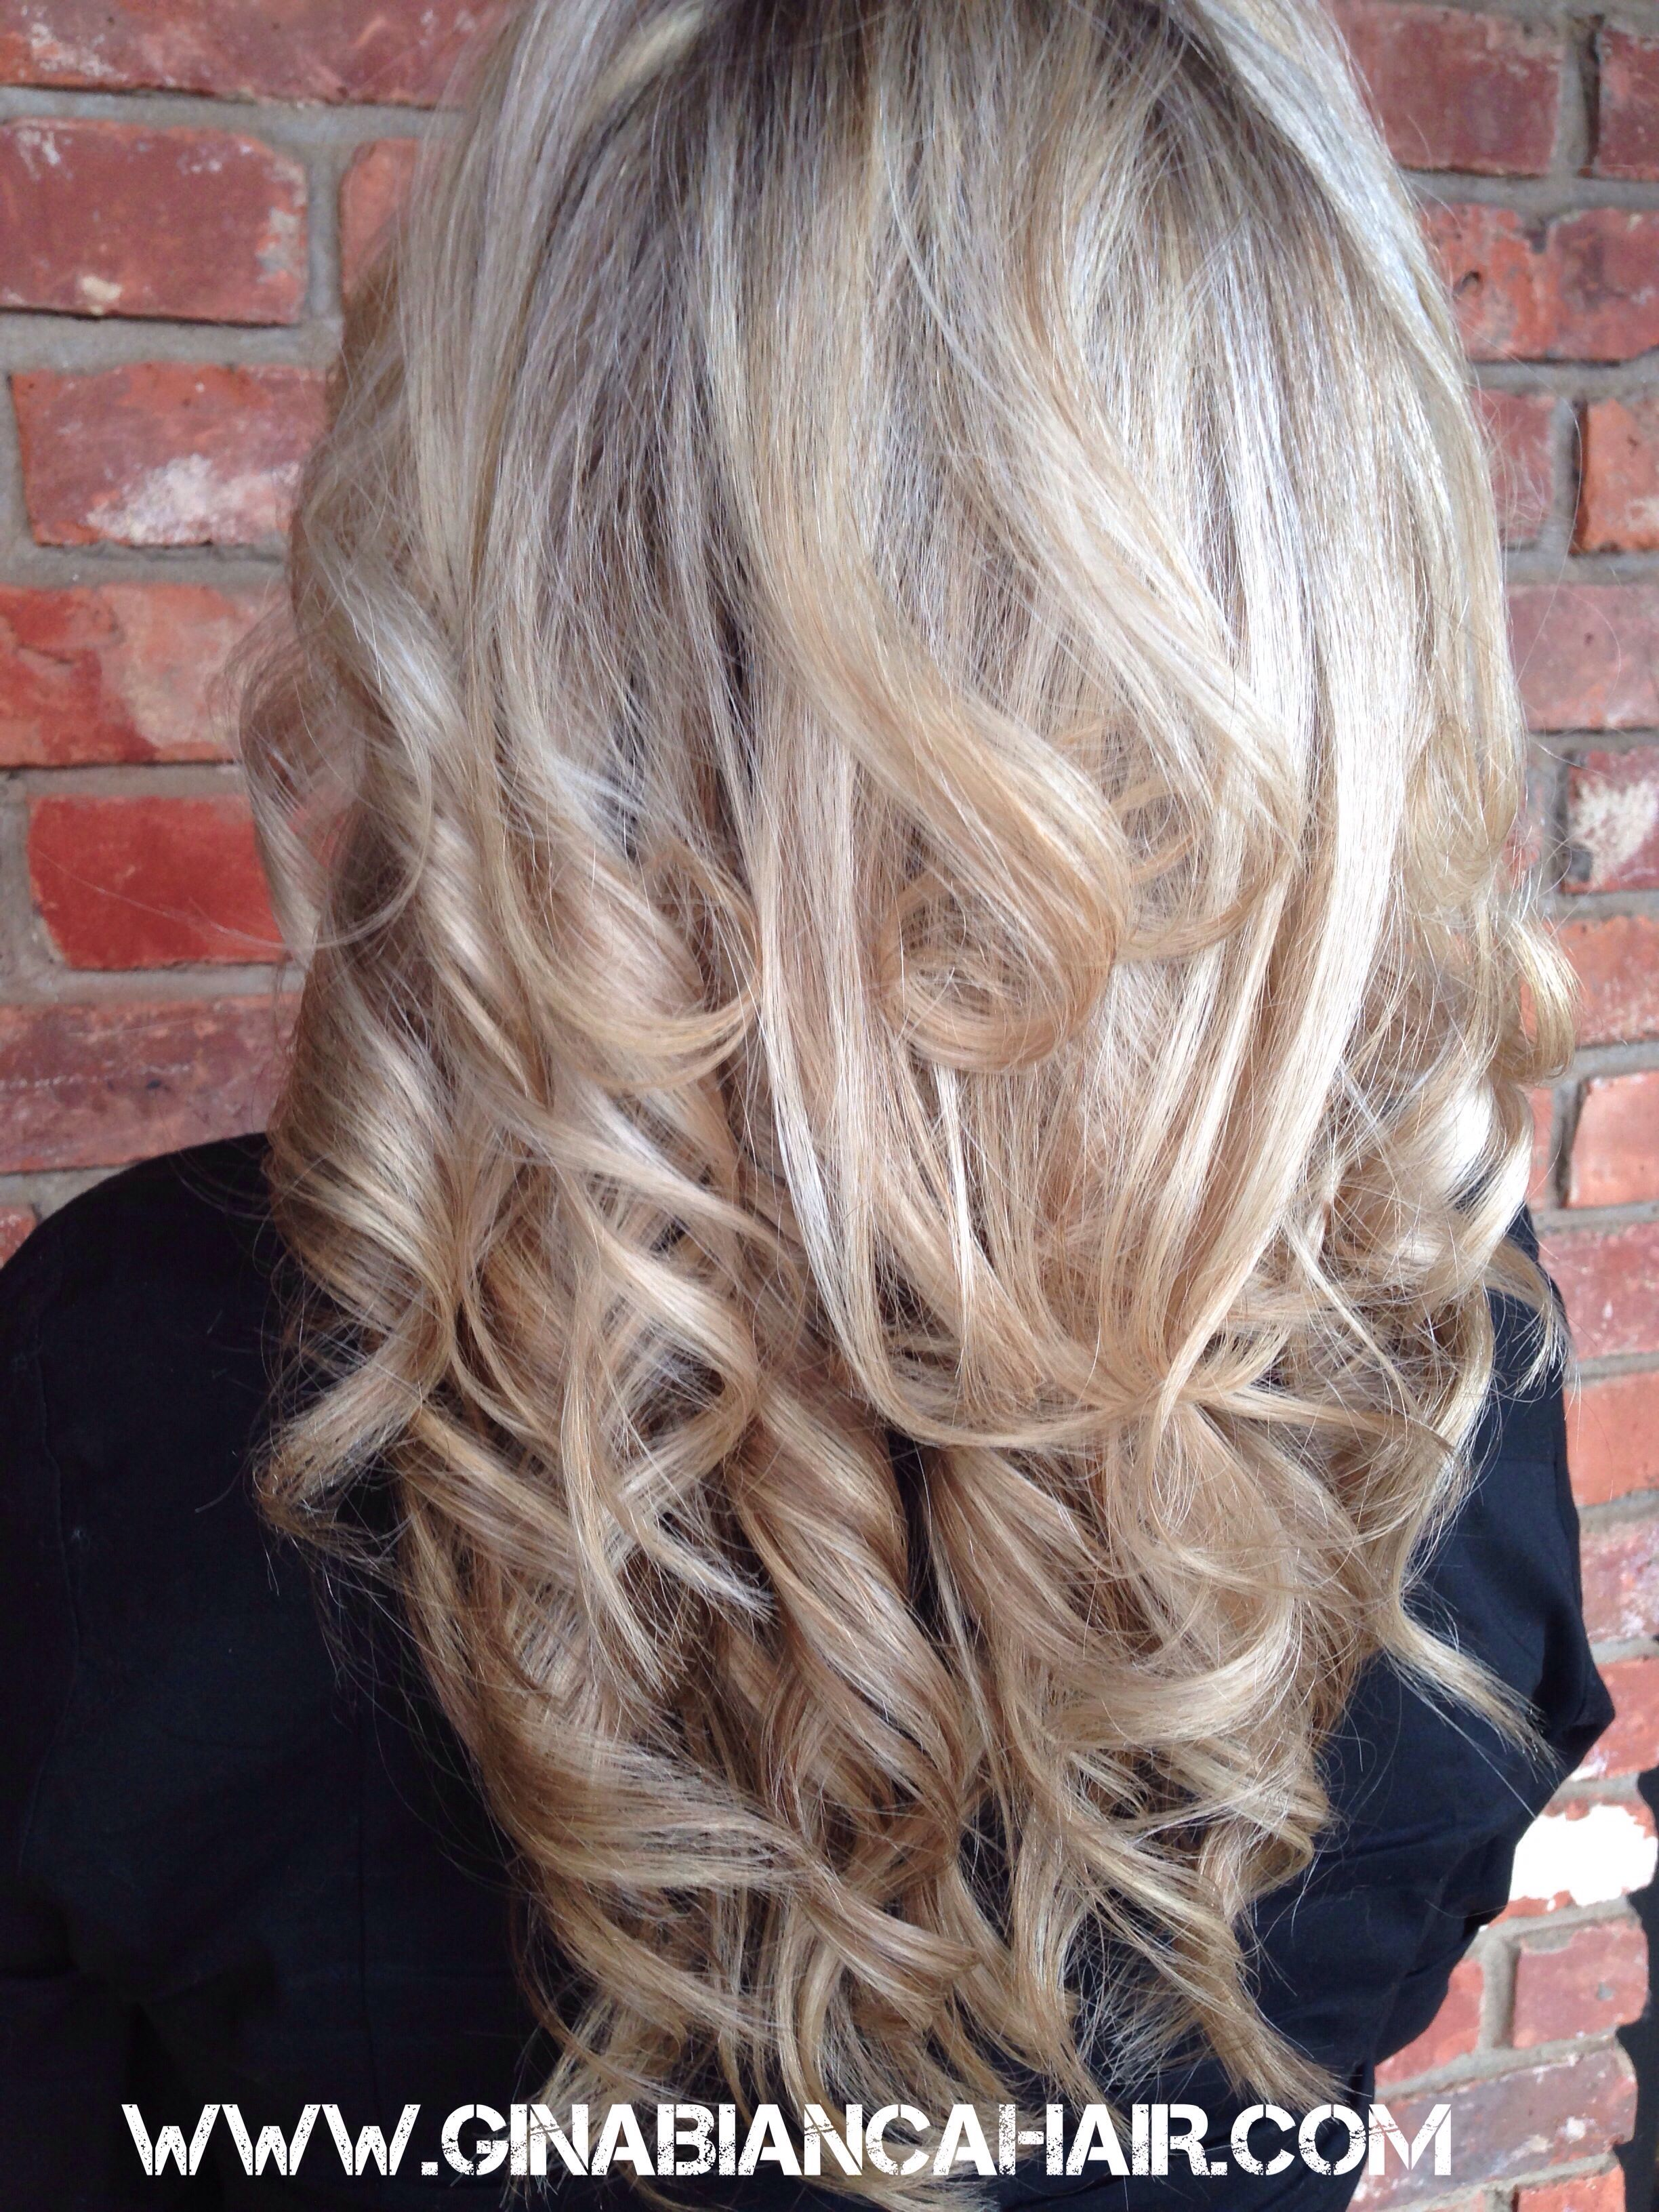 Beautiful Platinum Blonde Highlights Love Her Pretty Voluminous